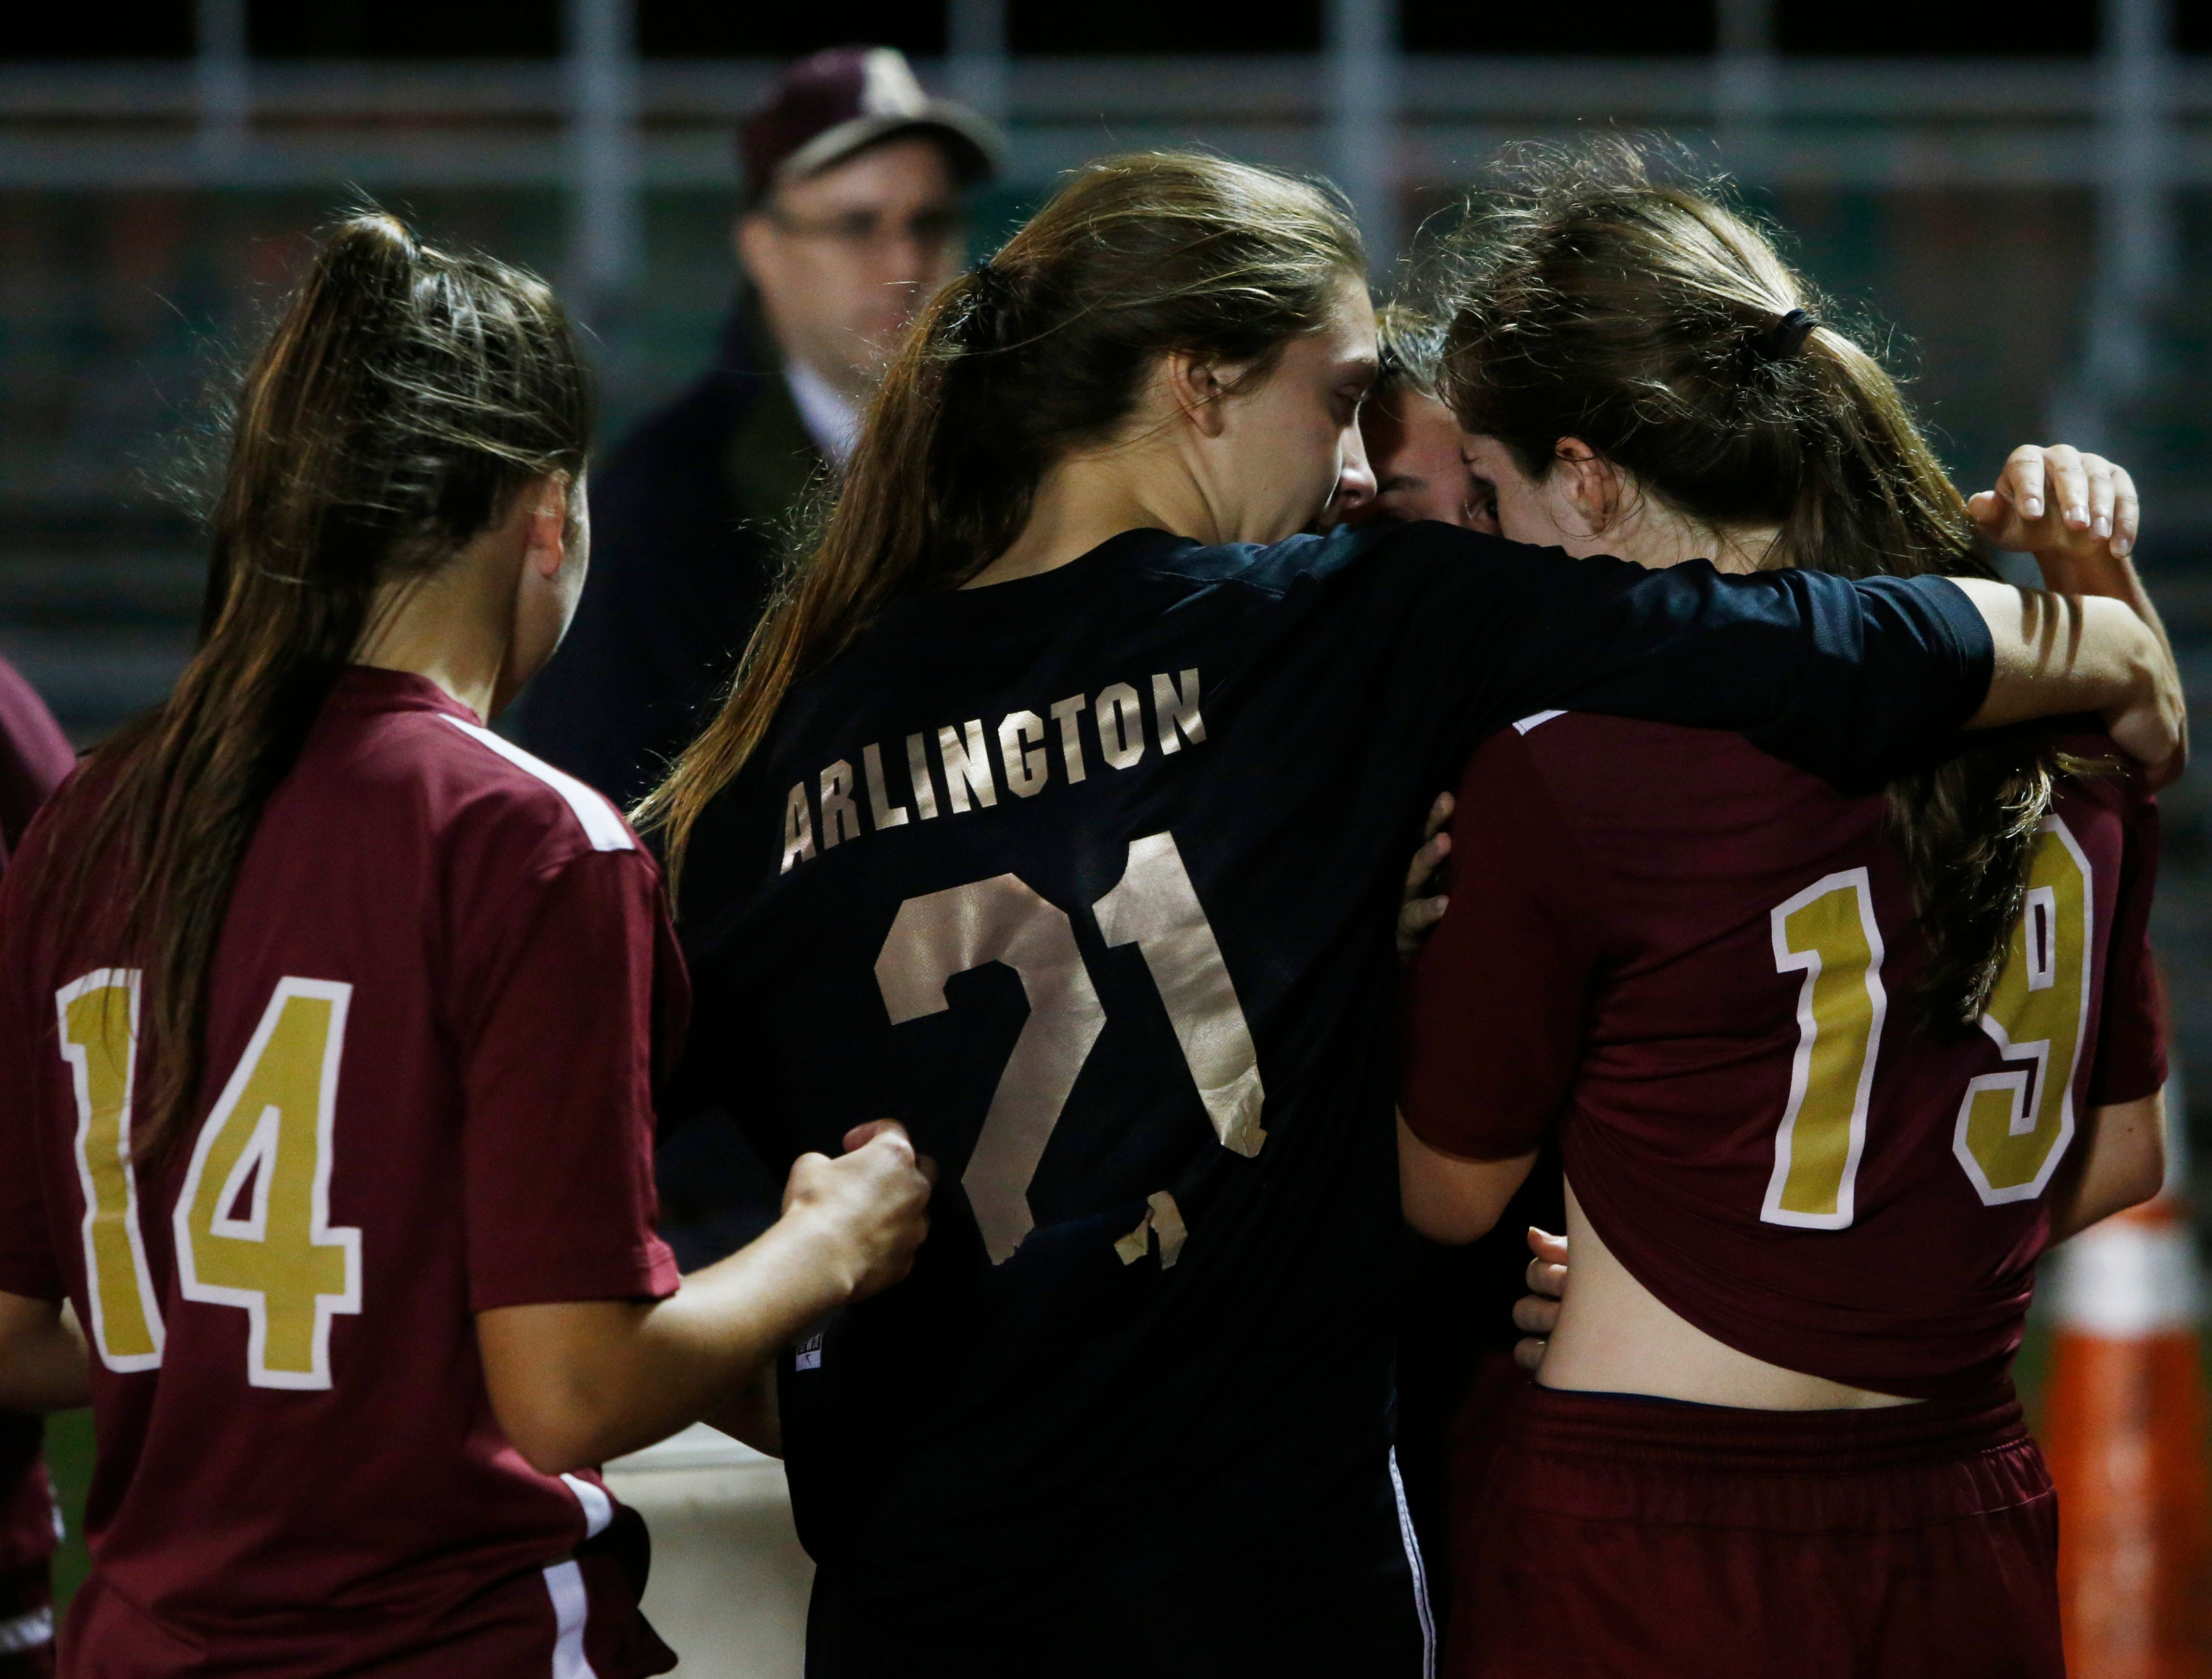 Arlington's girls soccer team console each other after falling to Monroe-Woodbury in Wednesday's class AA regional semifinal in Freedom Plains on October 31, 2018.